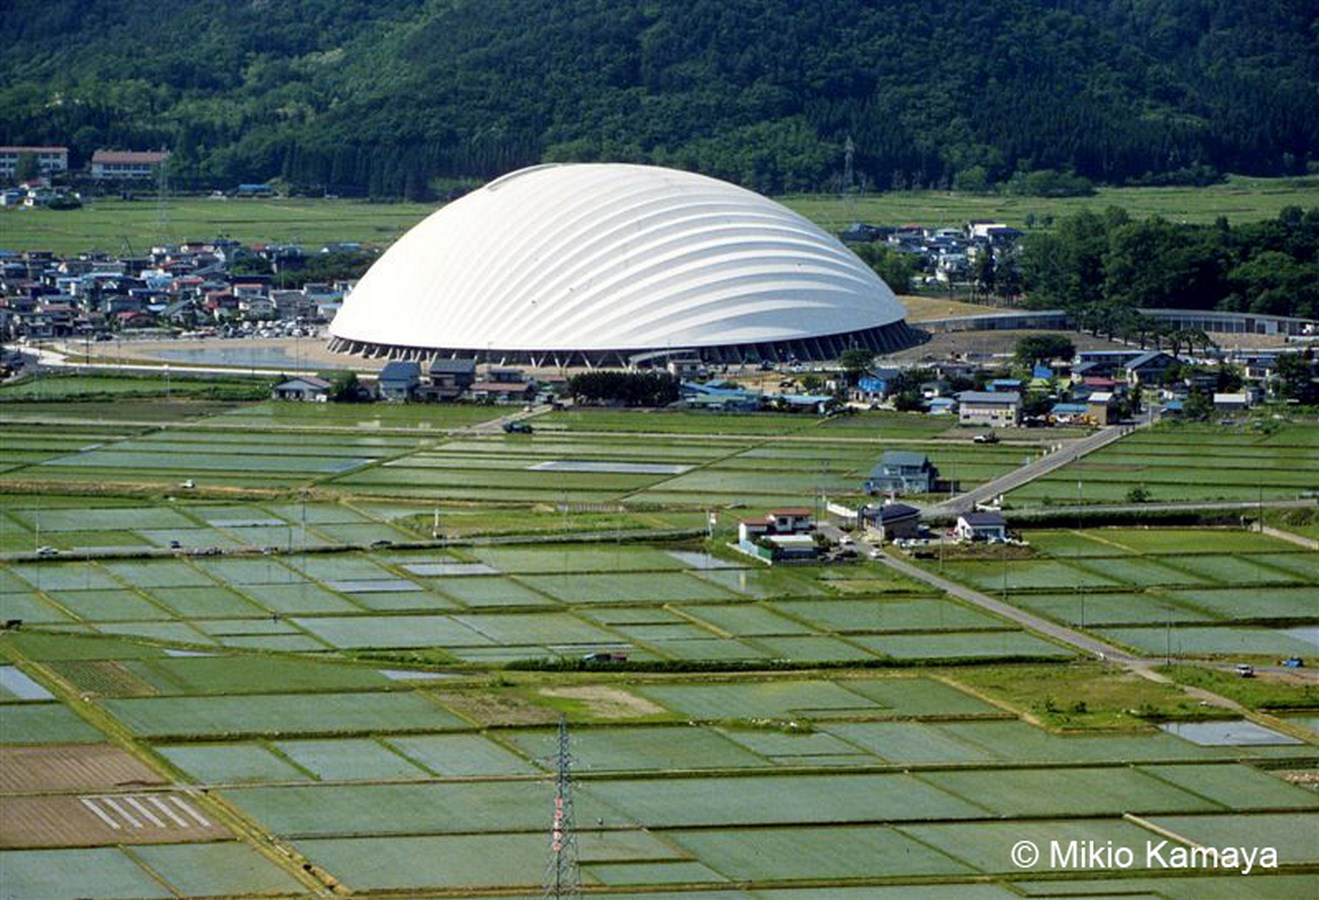 20 Hi-tech Projects by Toyo Ito Architect Every Architect should visit - Odate Dome (Nipro Hachiko Dome), Japan